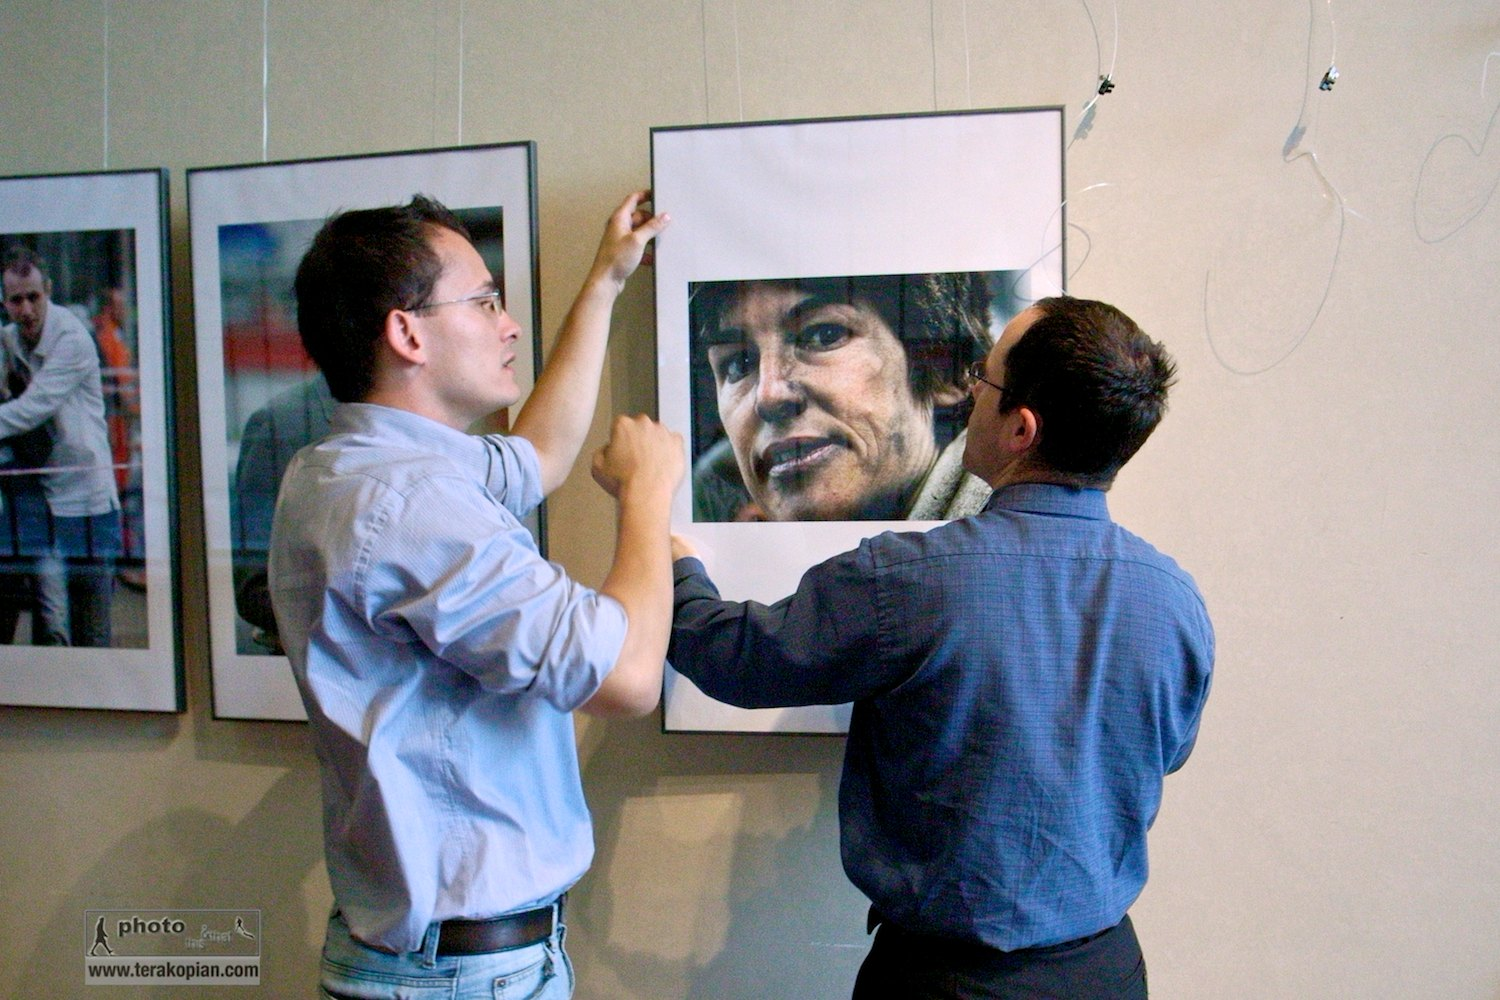 The exhibition is hung. In Prague to receive the Prize of Prague and view my solo exhibition which was part of the prize. September 2006. Photo: Edmond Terakopian